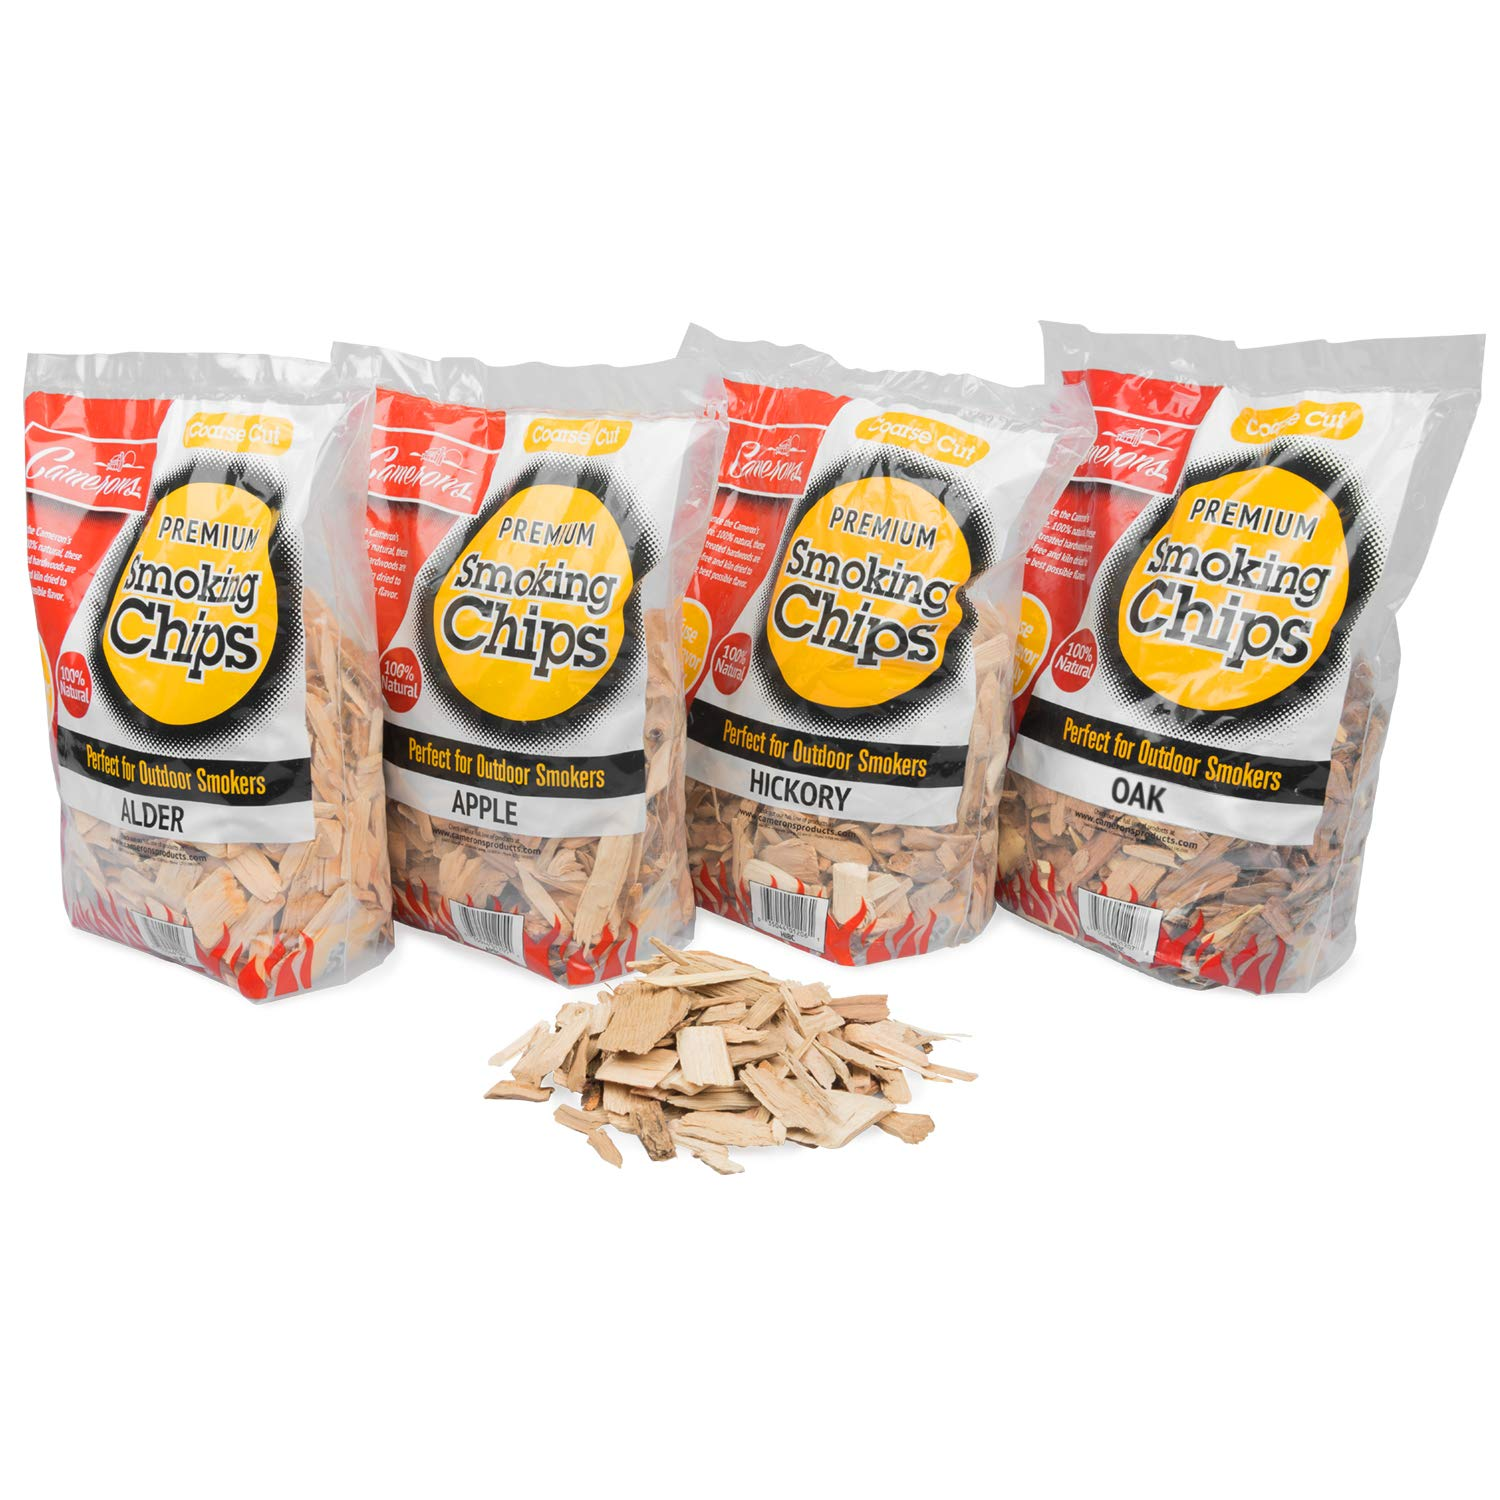 Smoking Wood Chips (Apple, Hickory, Oak, Alder)- 4 Pack Value Gift Set of Coarse Kiln Dried BBQ Chips- 100% All Natural Barbecue Smoker Shavings- 2lb Bag Variety Combo Set by Camerons